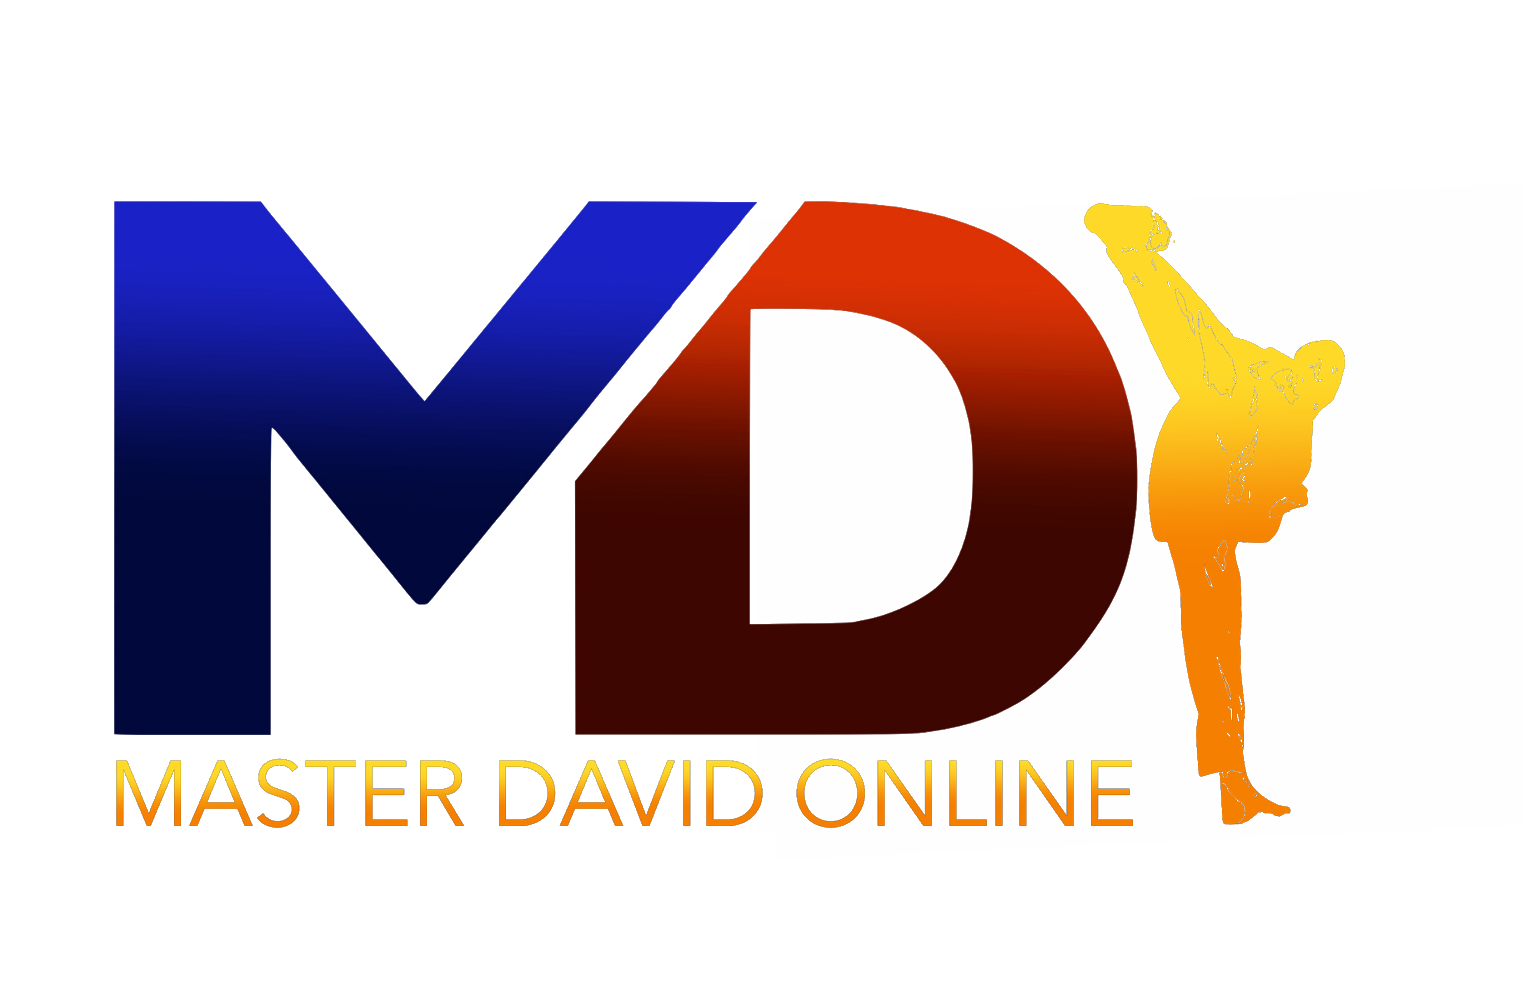 Master David Online Learning